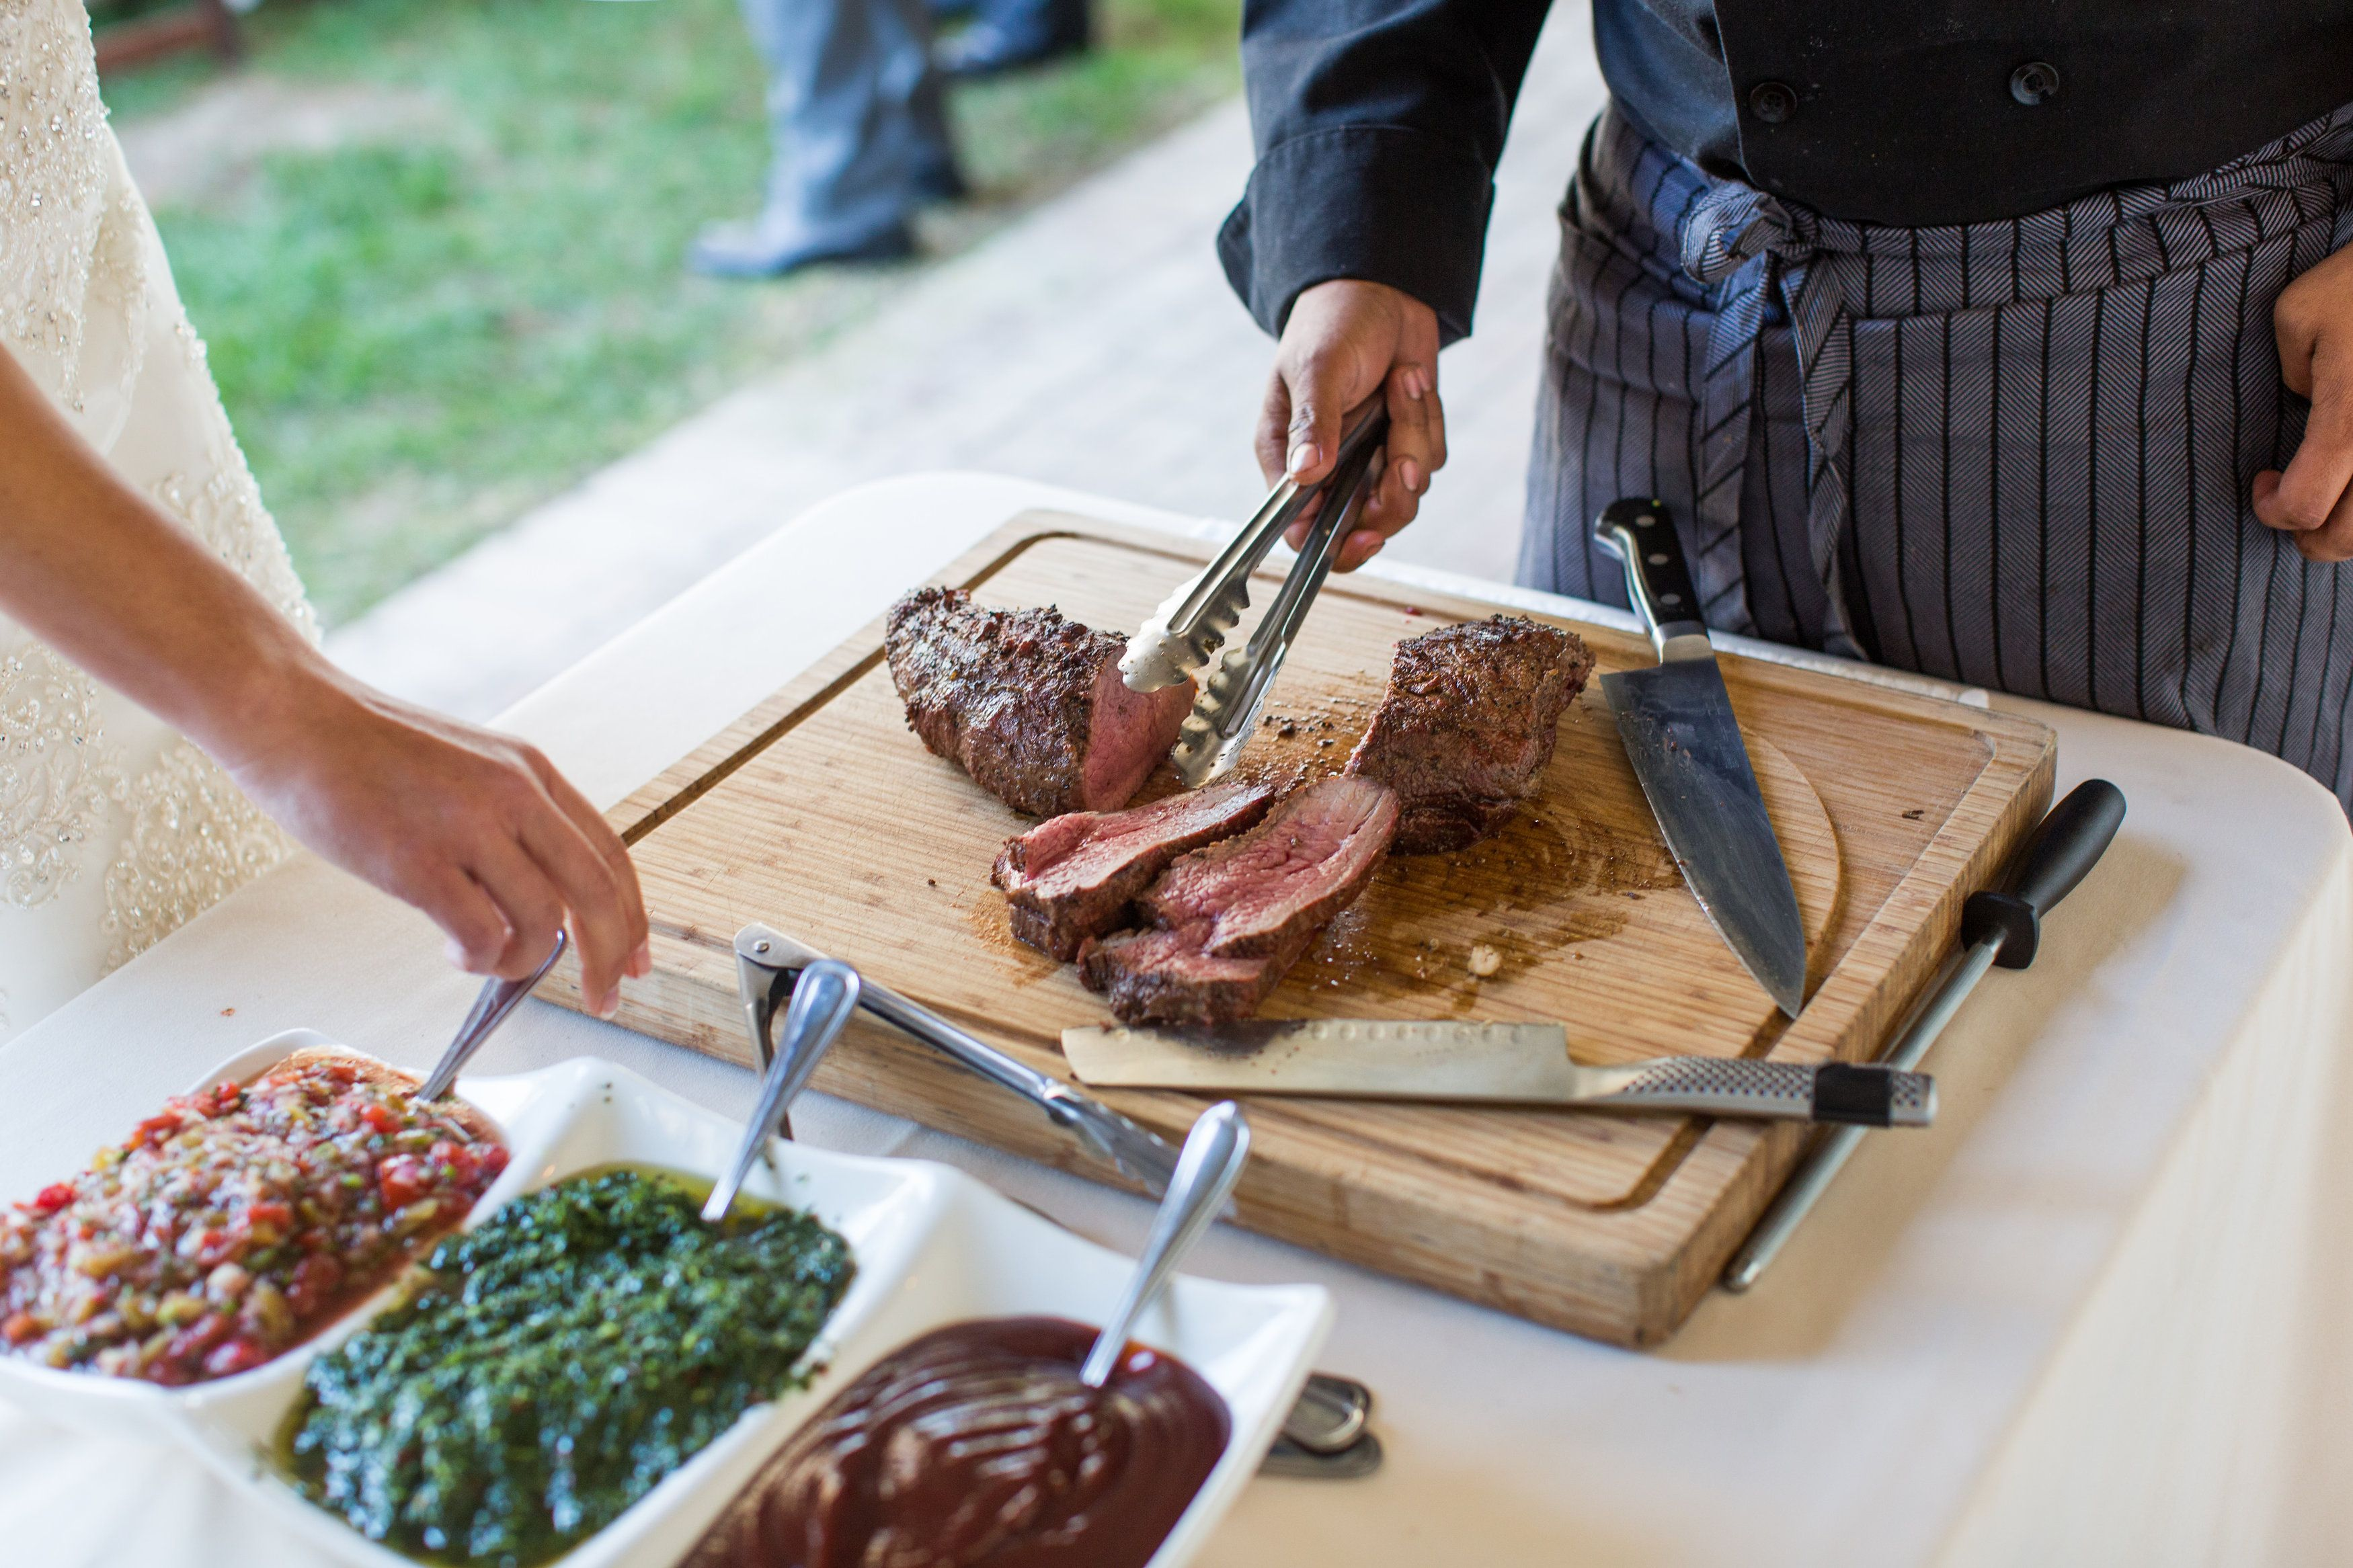 Jessica Sean San Luis Obispo Ca Tritip Field To Table - Field to table catering